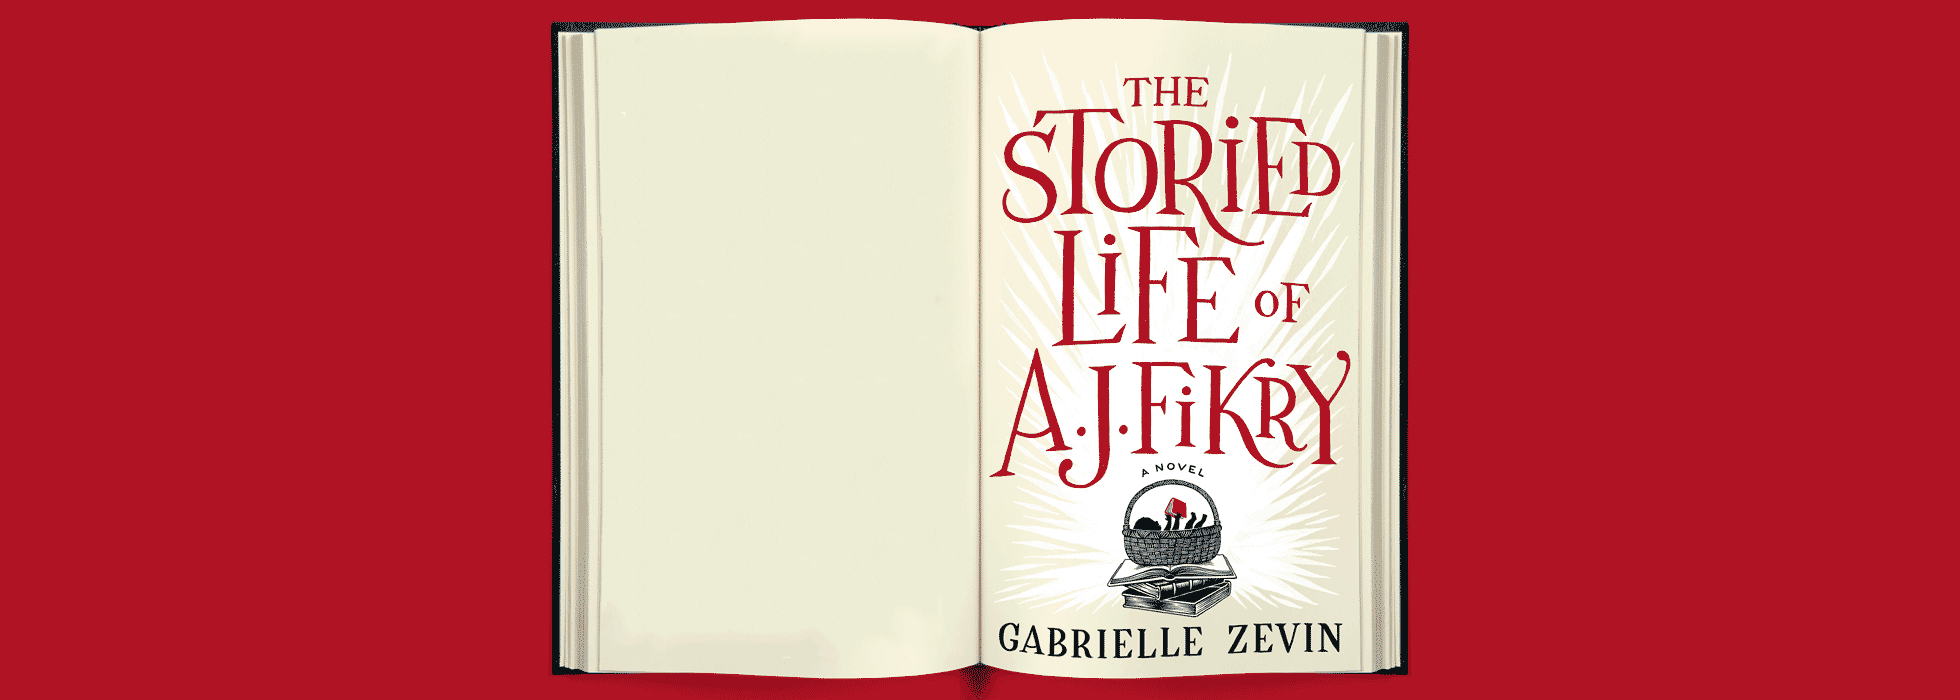 the storied life of a.j. fikry gabrielle zevin